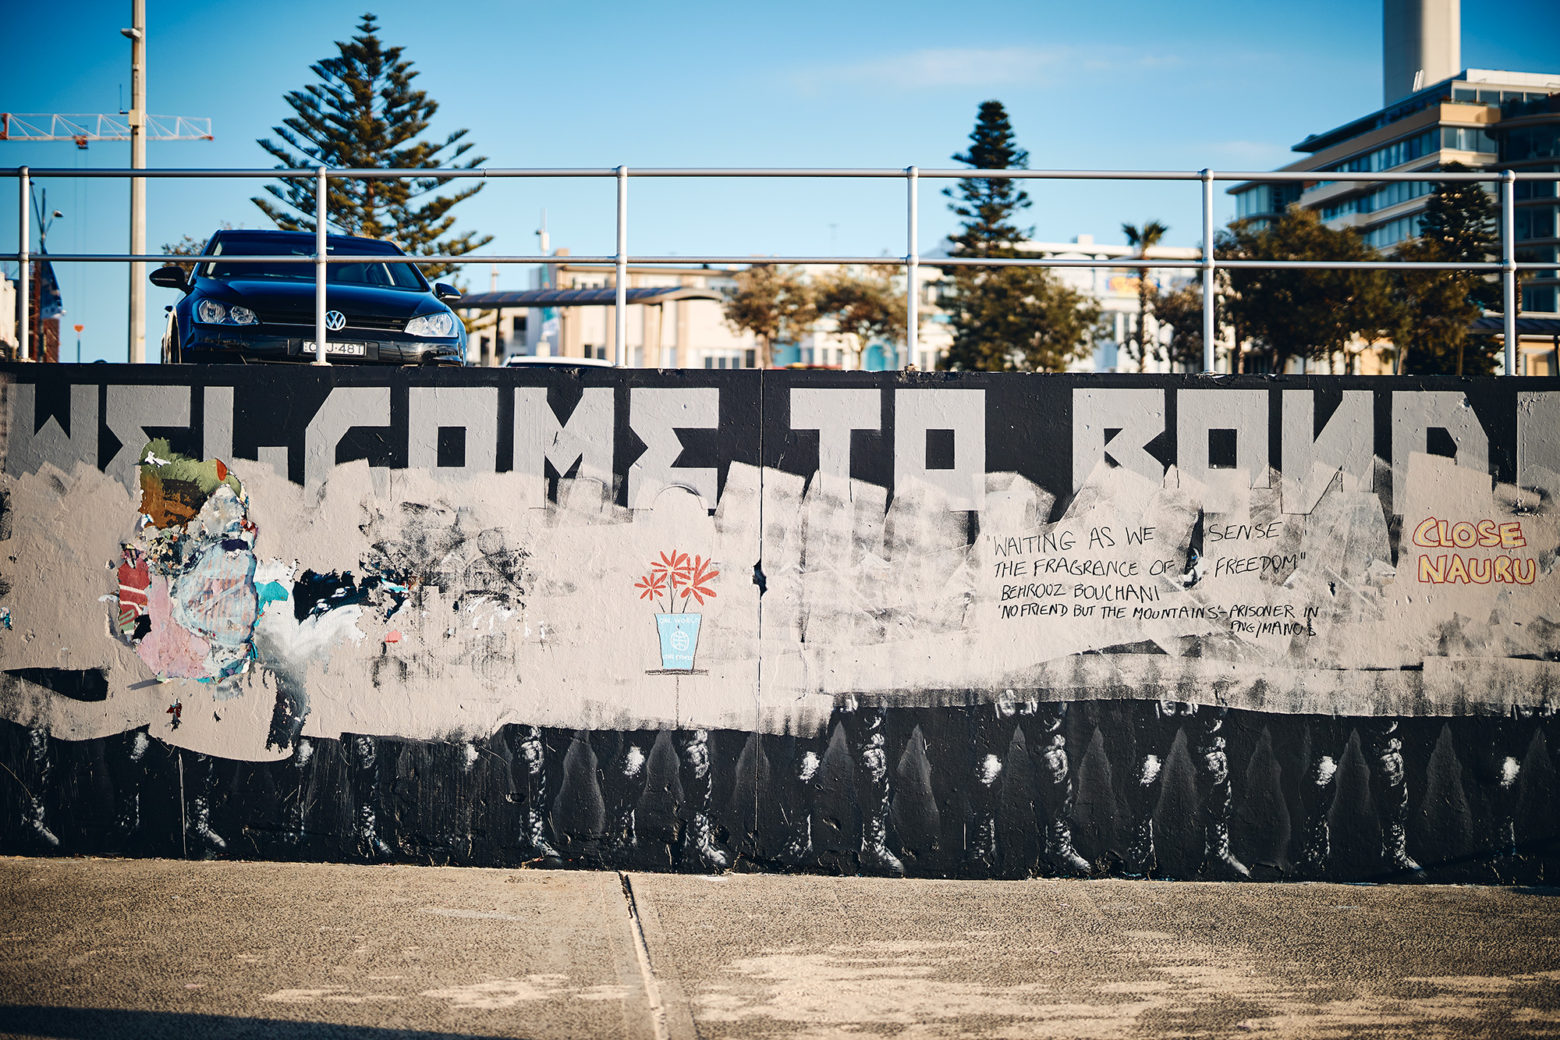 The very controversial wall mural at Bondi